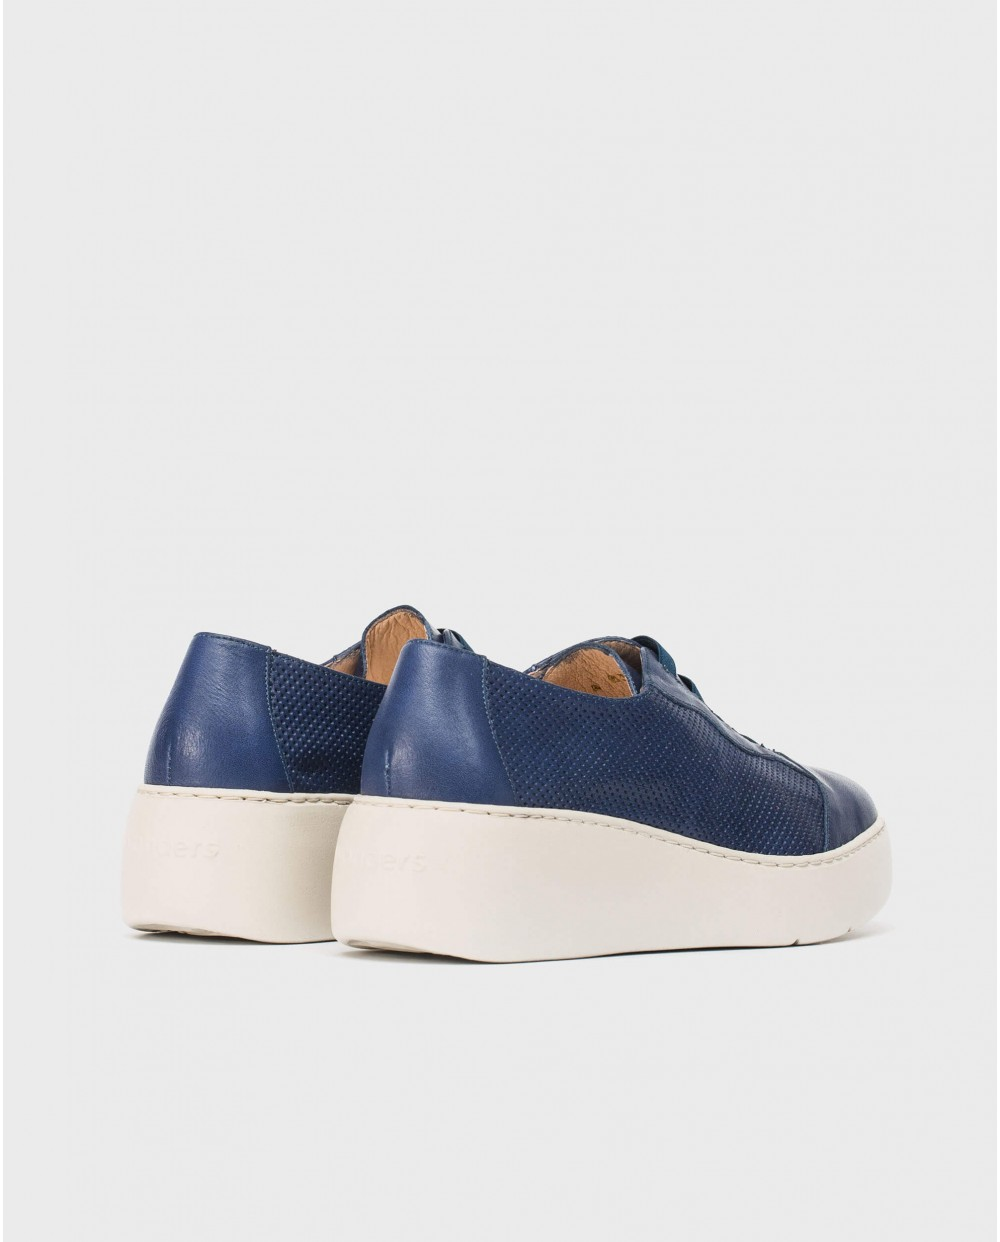 Wonders-Sneakers-Leather micro-perforated sneaker